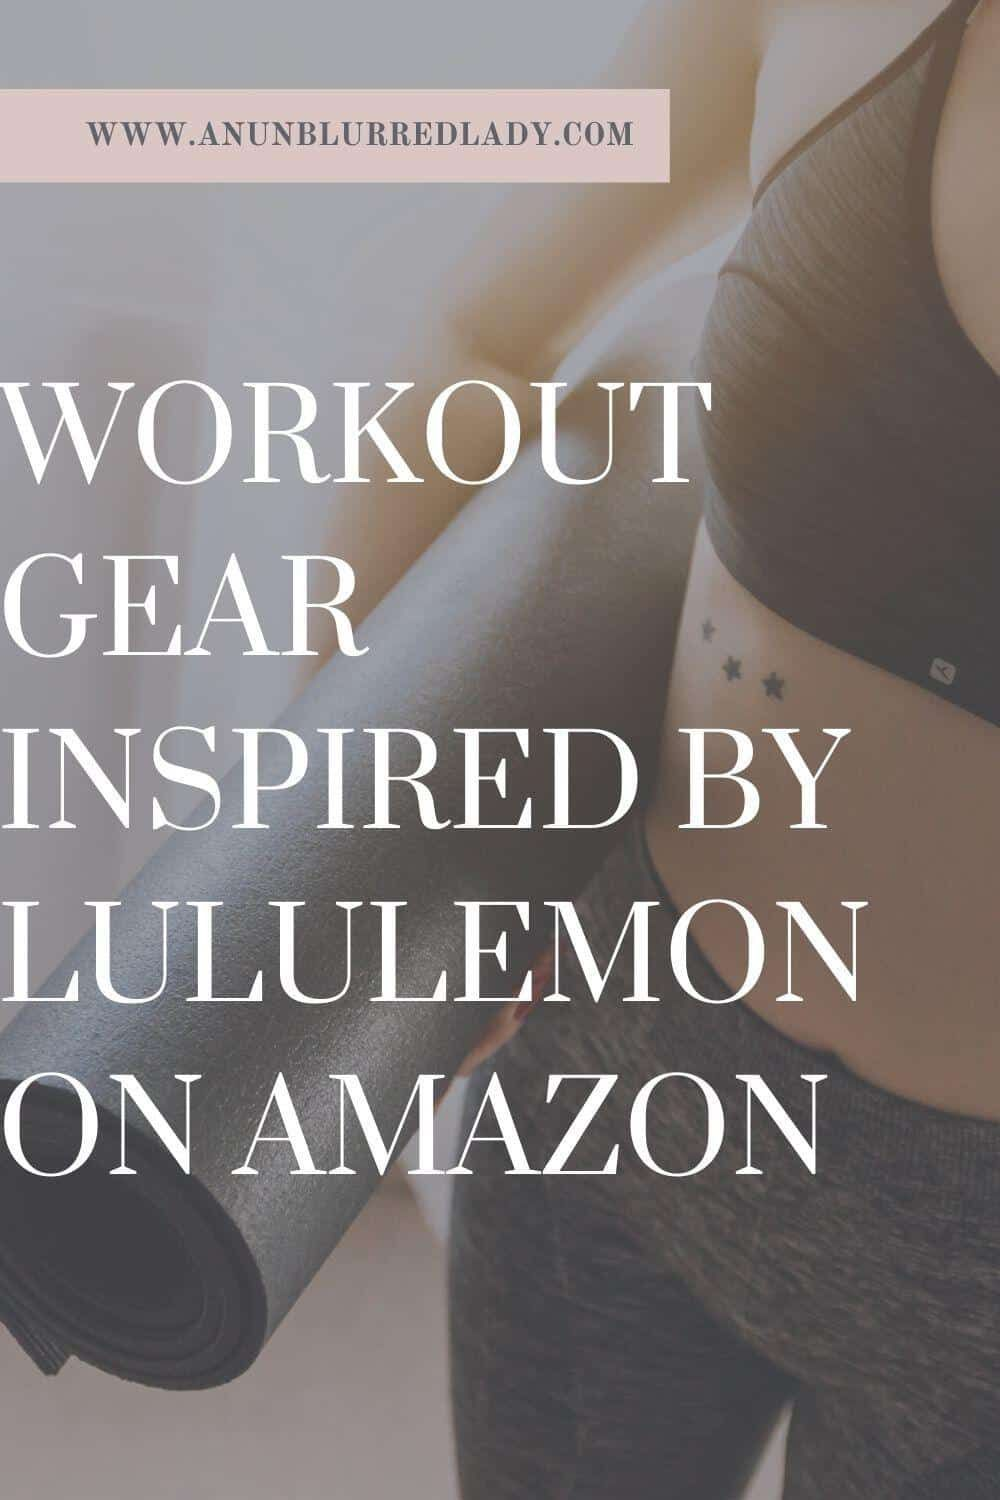 Workout Gear Inspired By Lululemon on Amazon An